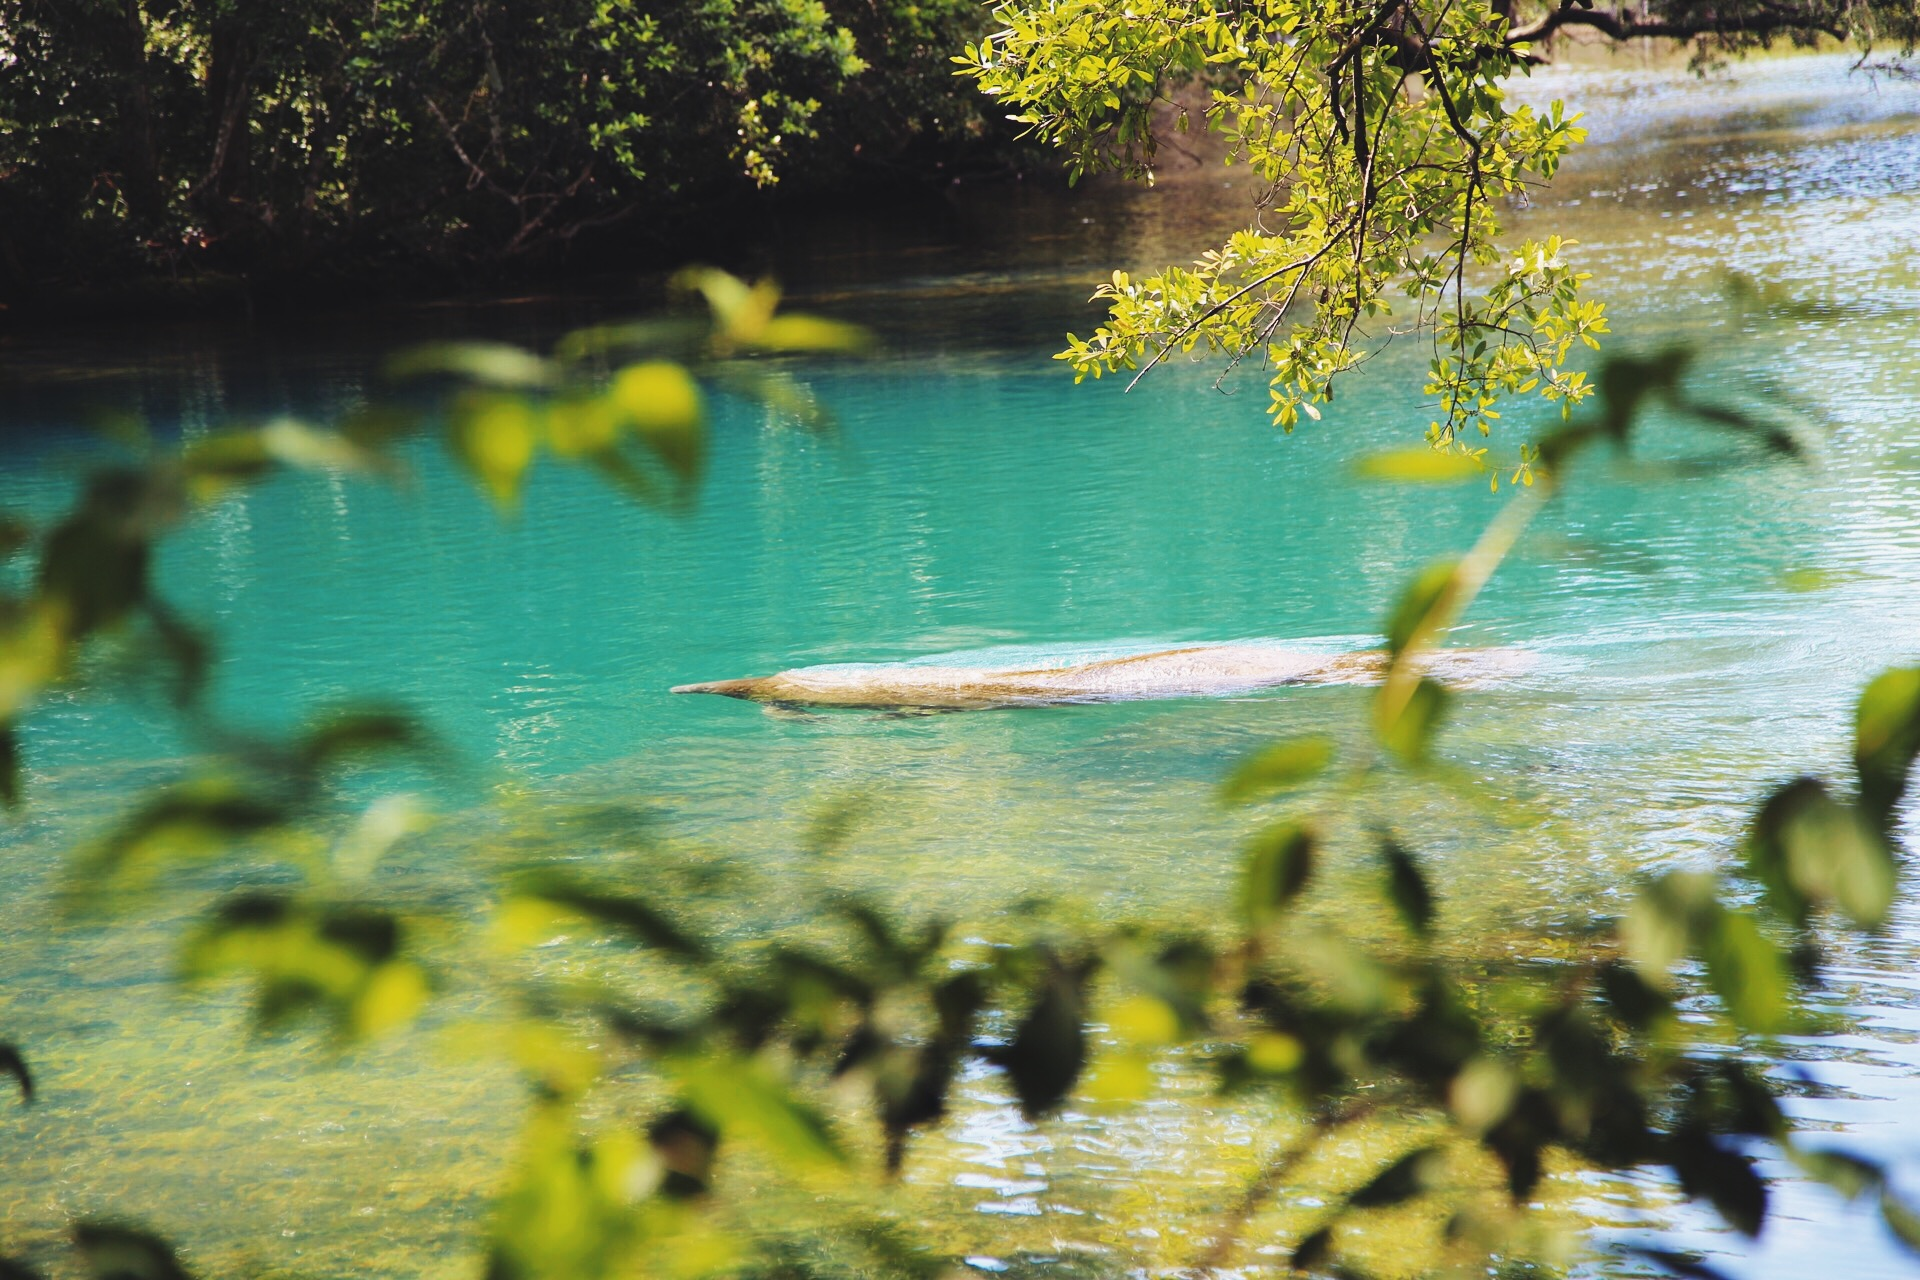 Check out 5 Reasons to Visit Homosassa Springs State Park at MoreDetours.com.